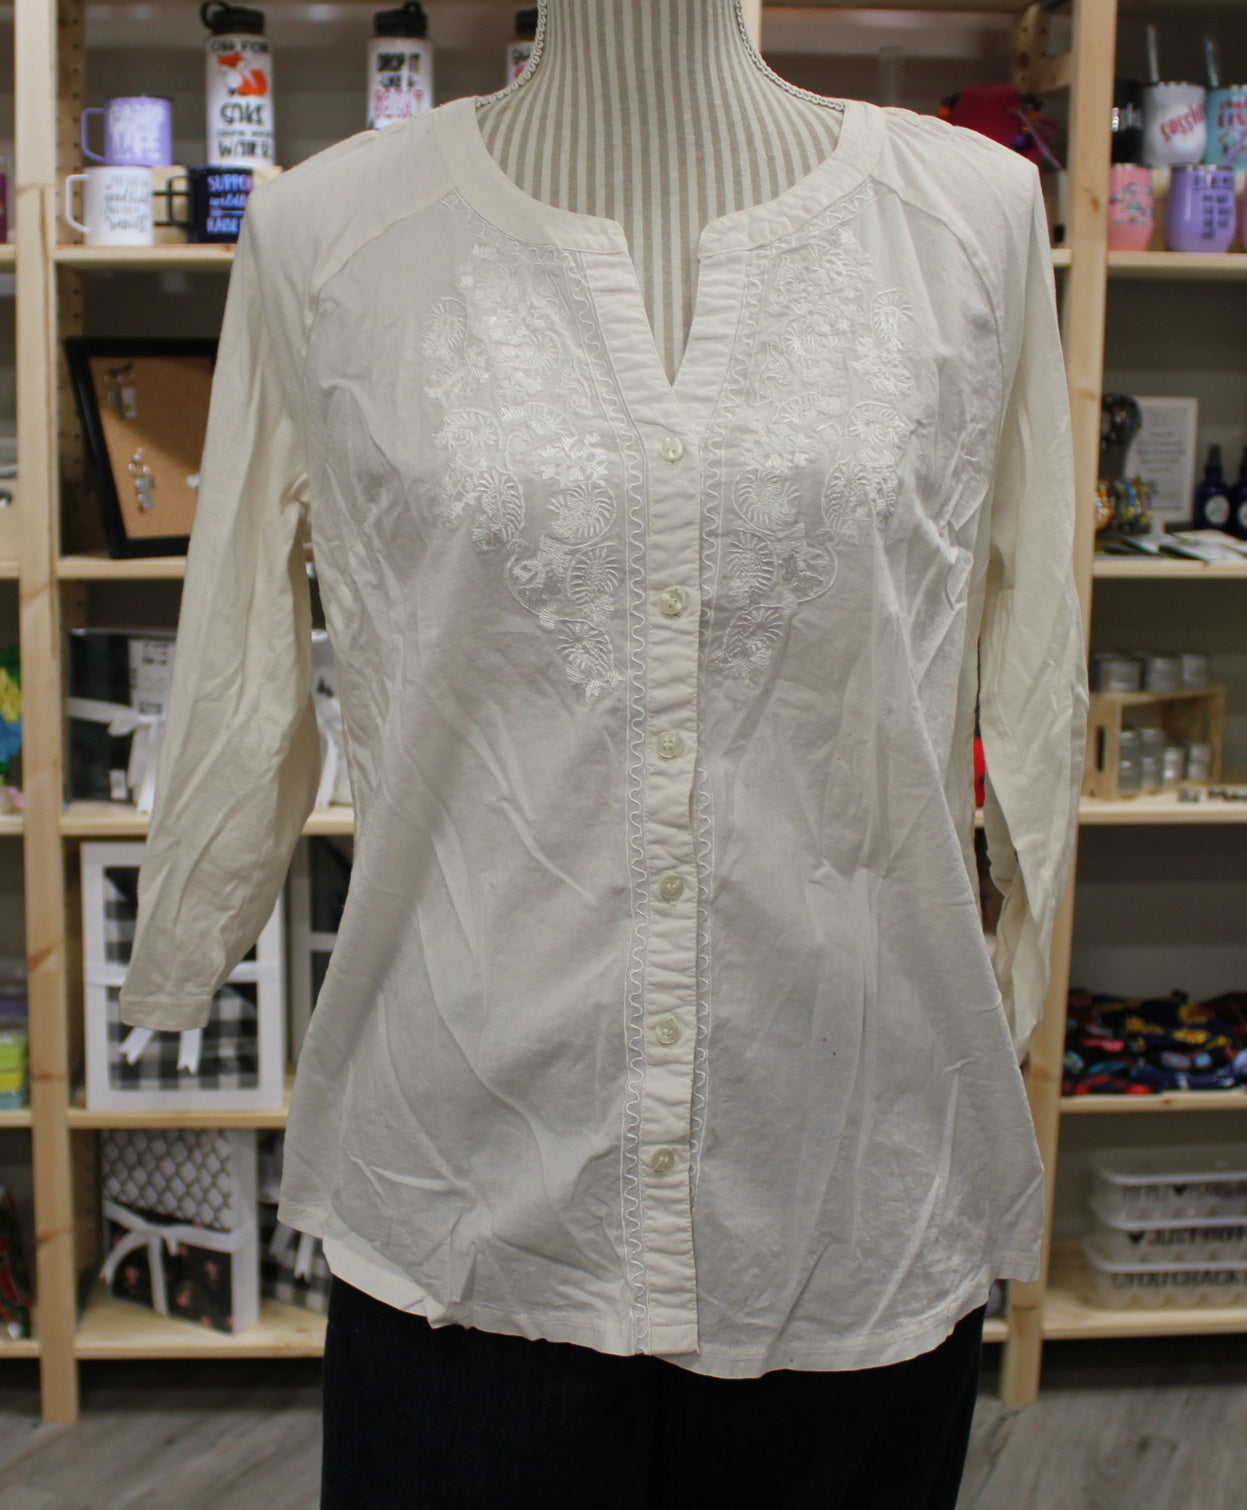 VERVE LADIES OFFWHITE BLOUSE MEDIUM VGUC/EUC